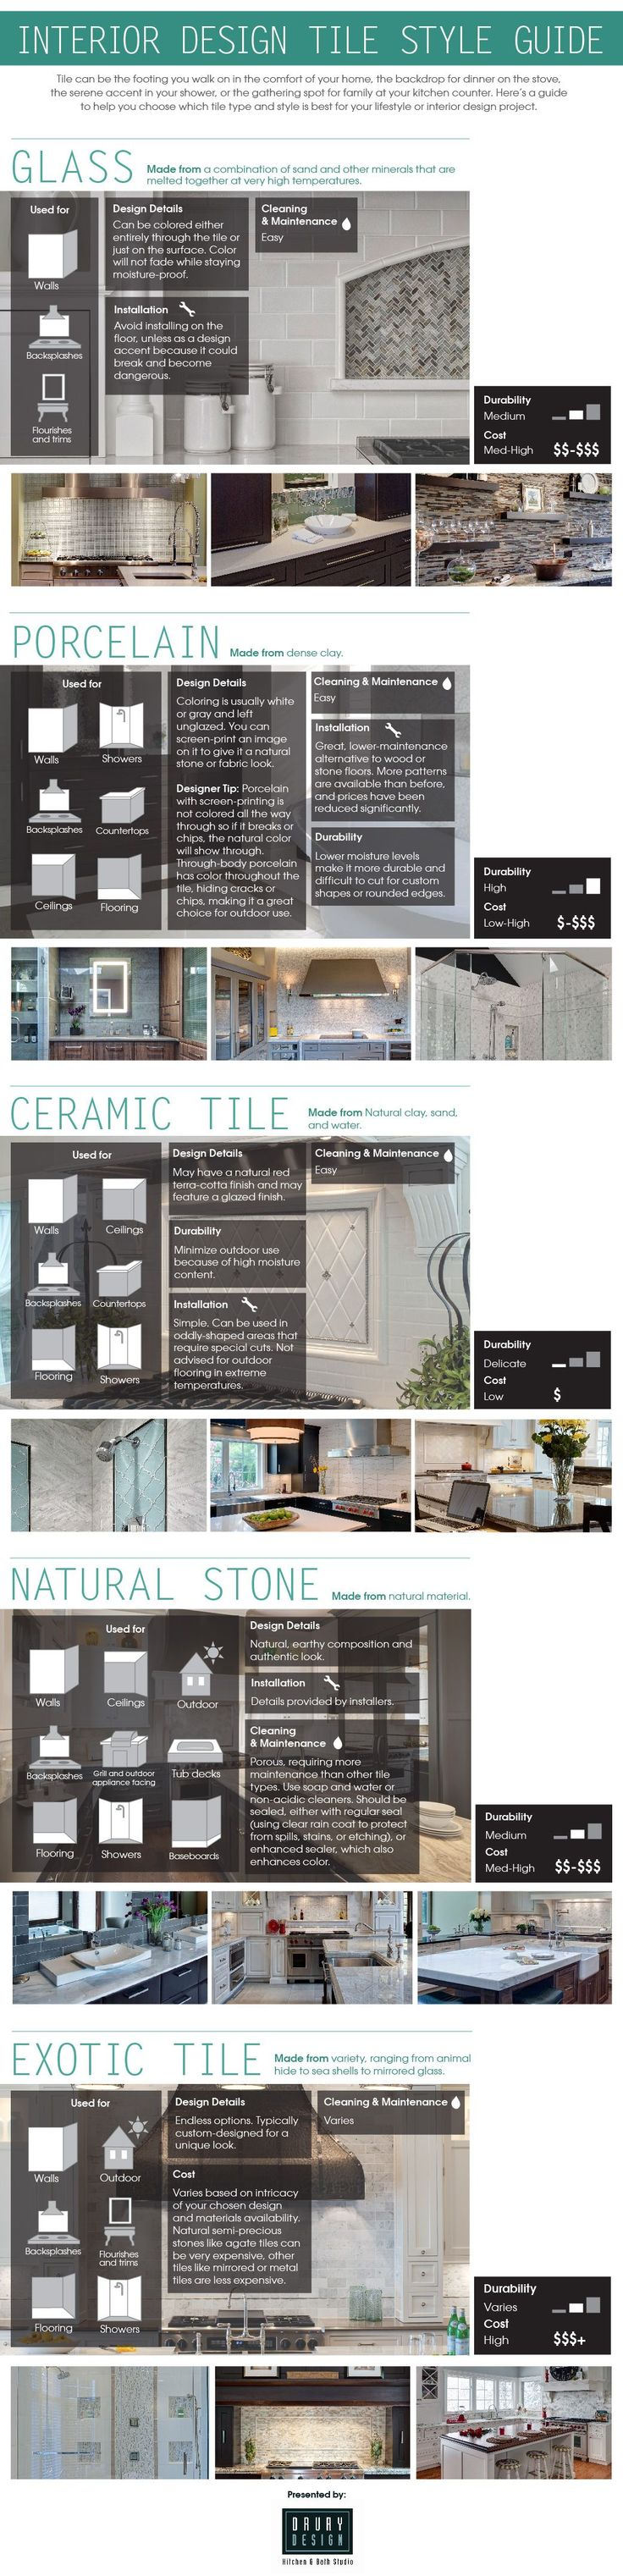 Interior Design Tips And Tricks 606 best images about house ideas on pinterest | brass hardware